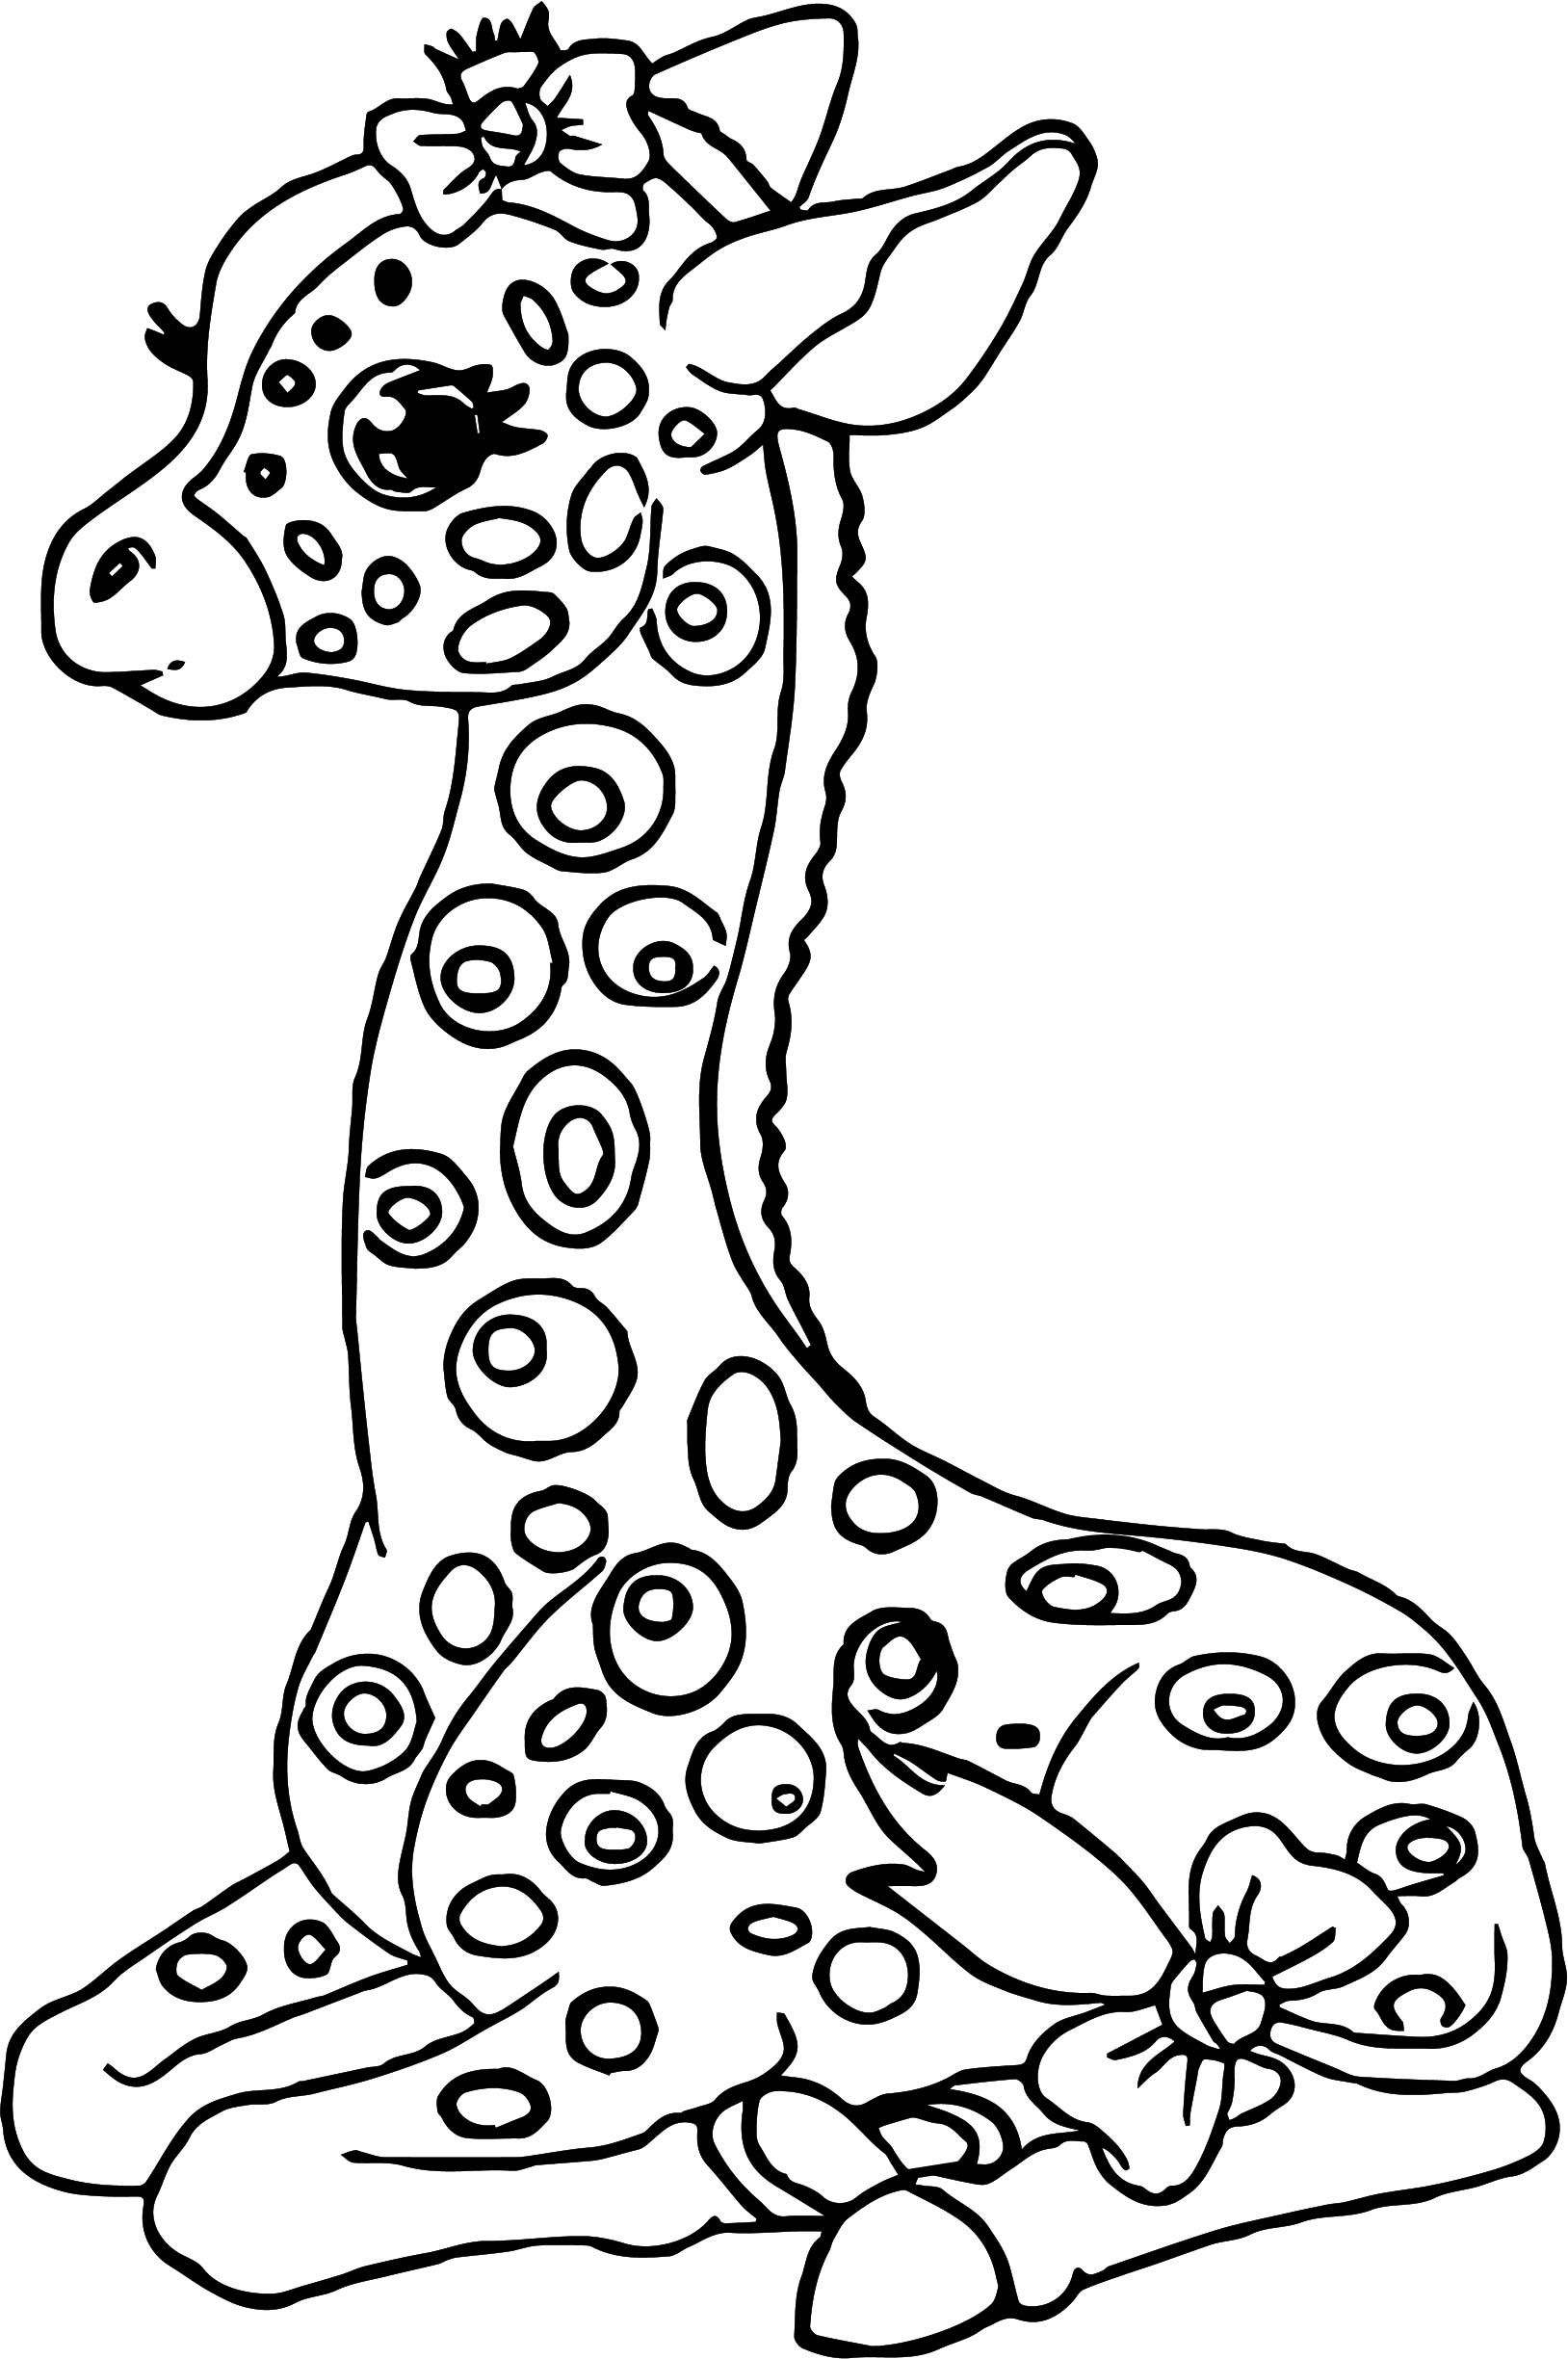 awesome Staying Kids Girl Giraffe Coloring Page | Giraffe ...